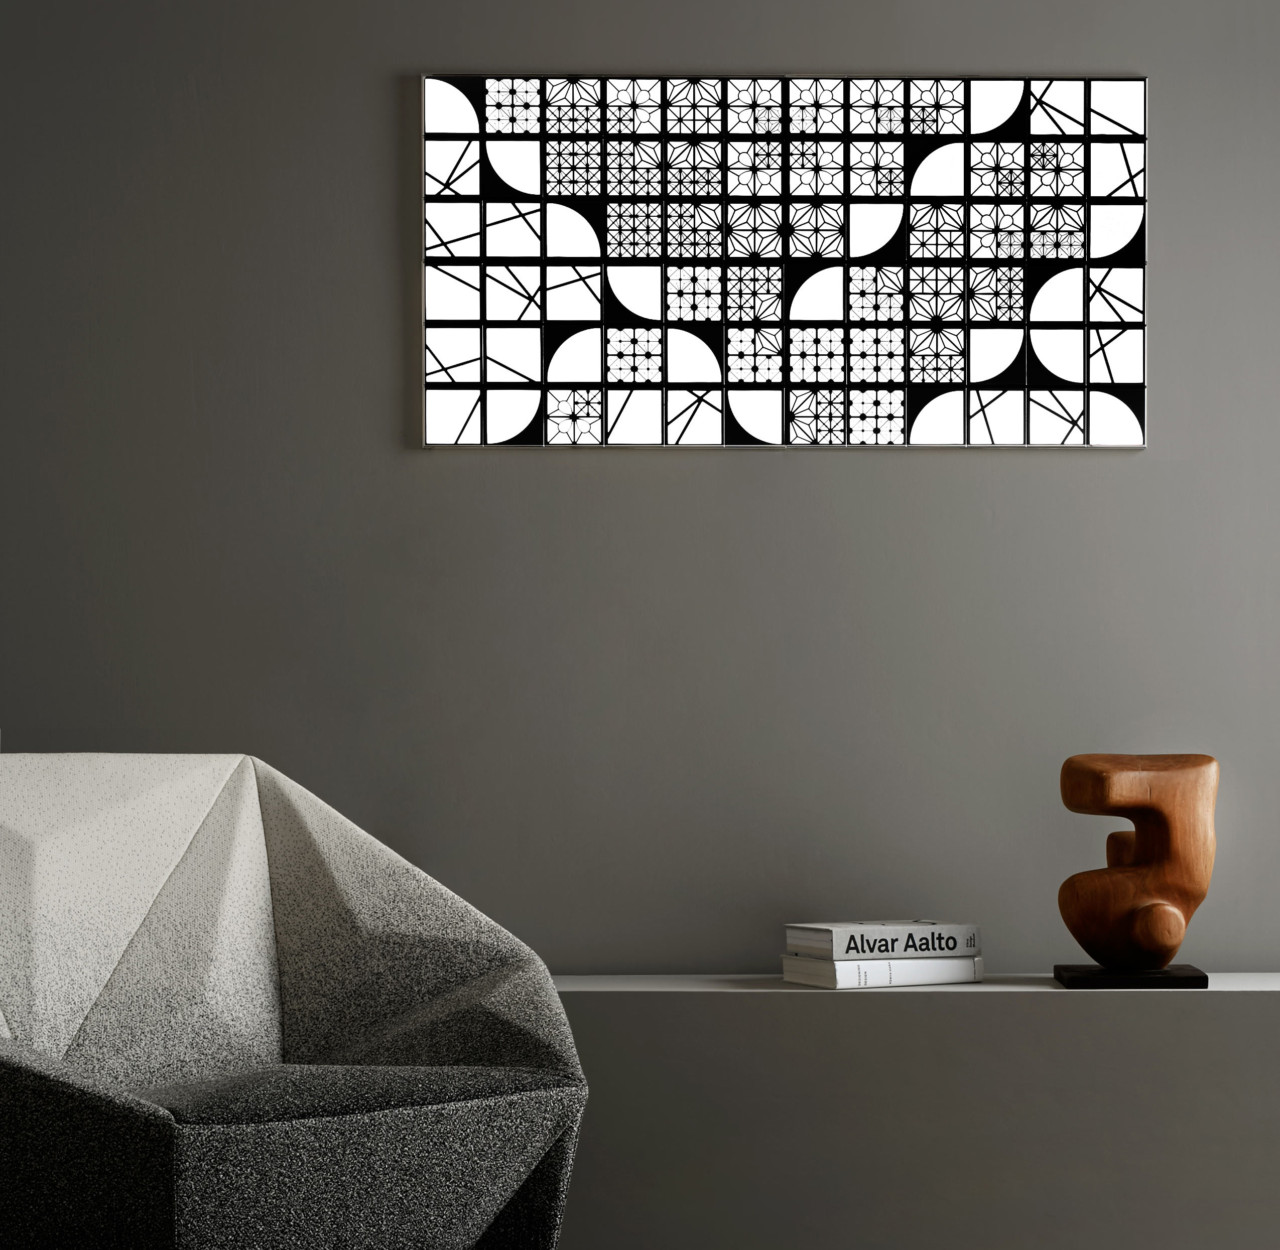 KUMIKO OLED Modular Lighting Turns Off Into a Mirror